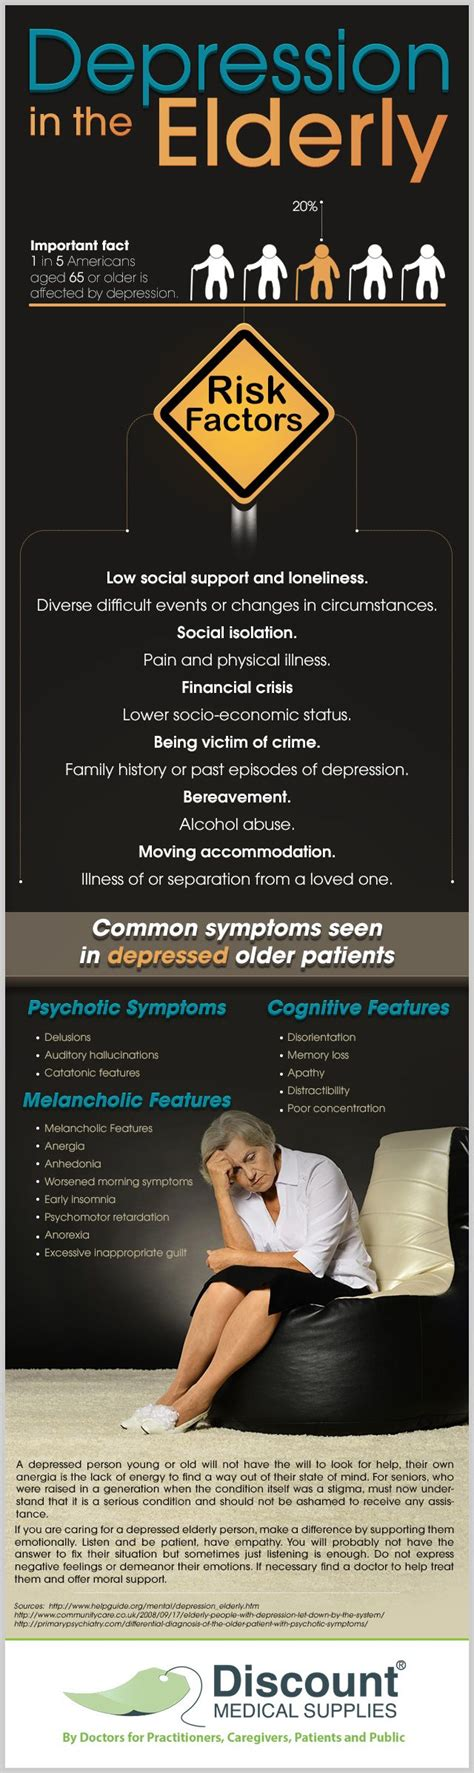 aging and depression picture 14